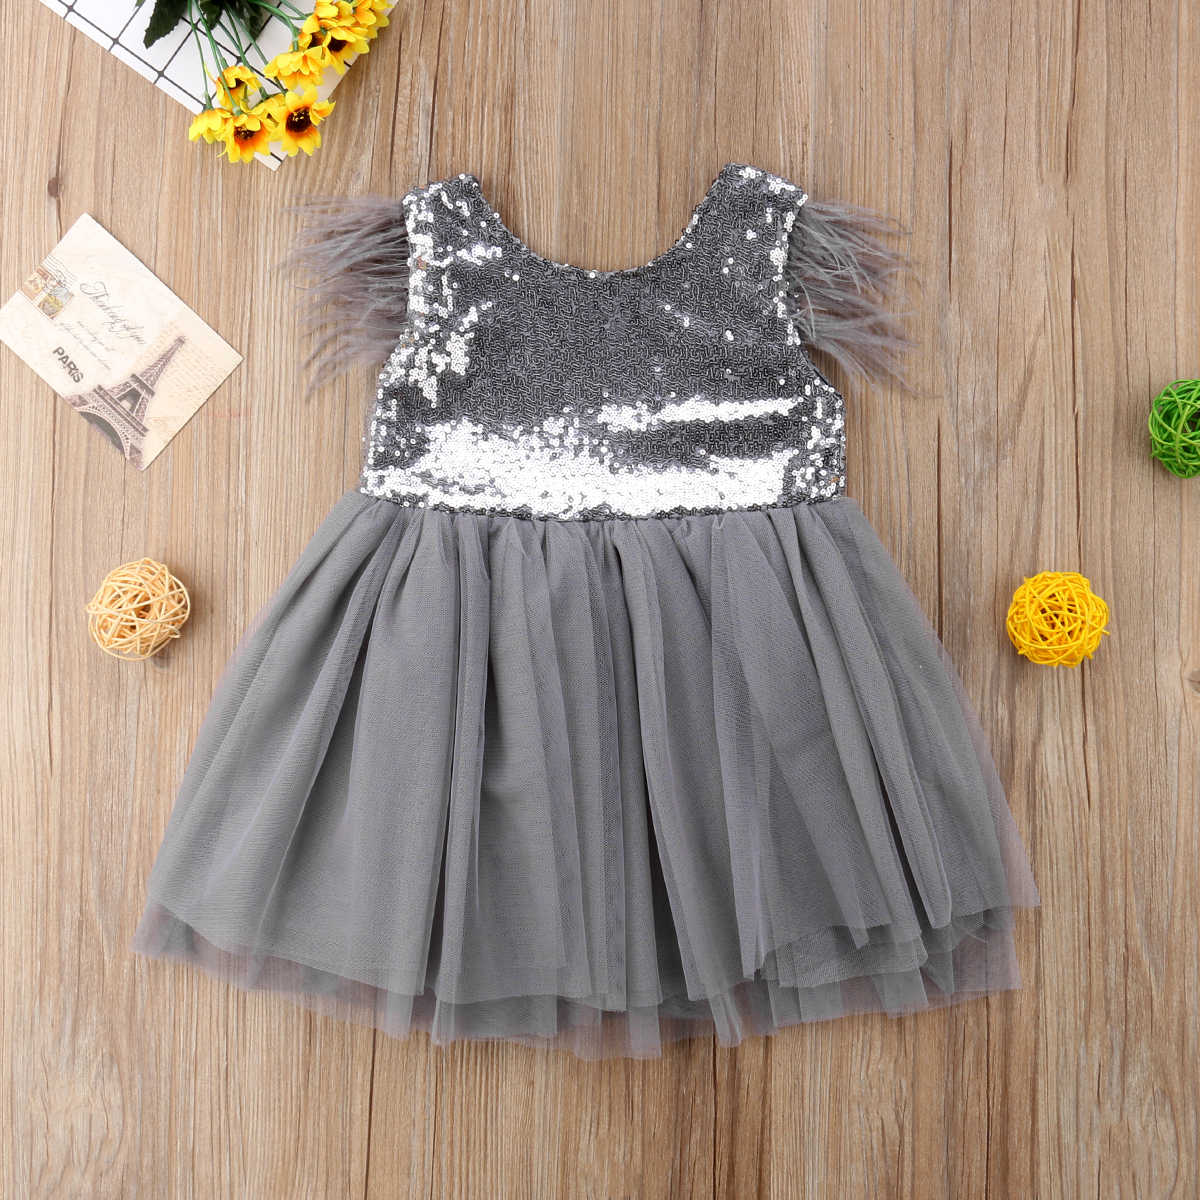 Sequins Dress For Girls Toddler Baby Girls Fur Feather Sleeveless Princess  Dress Sequins Tutu Party Prom 2bc4d0371878